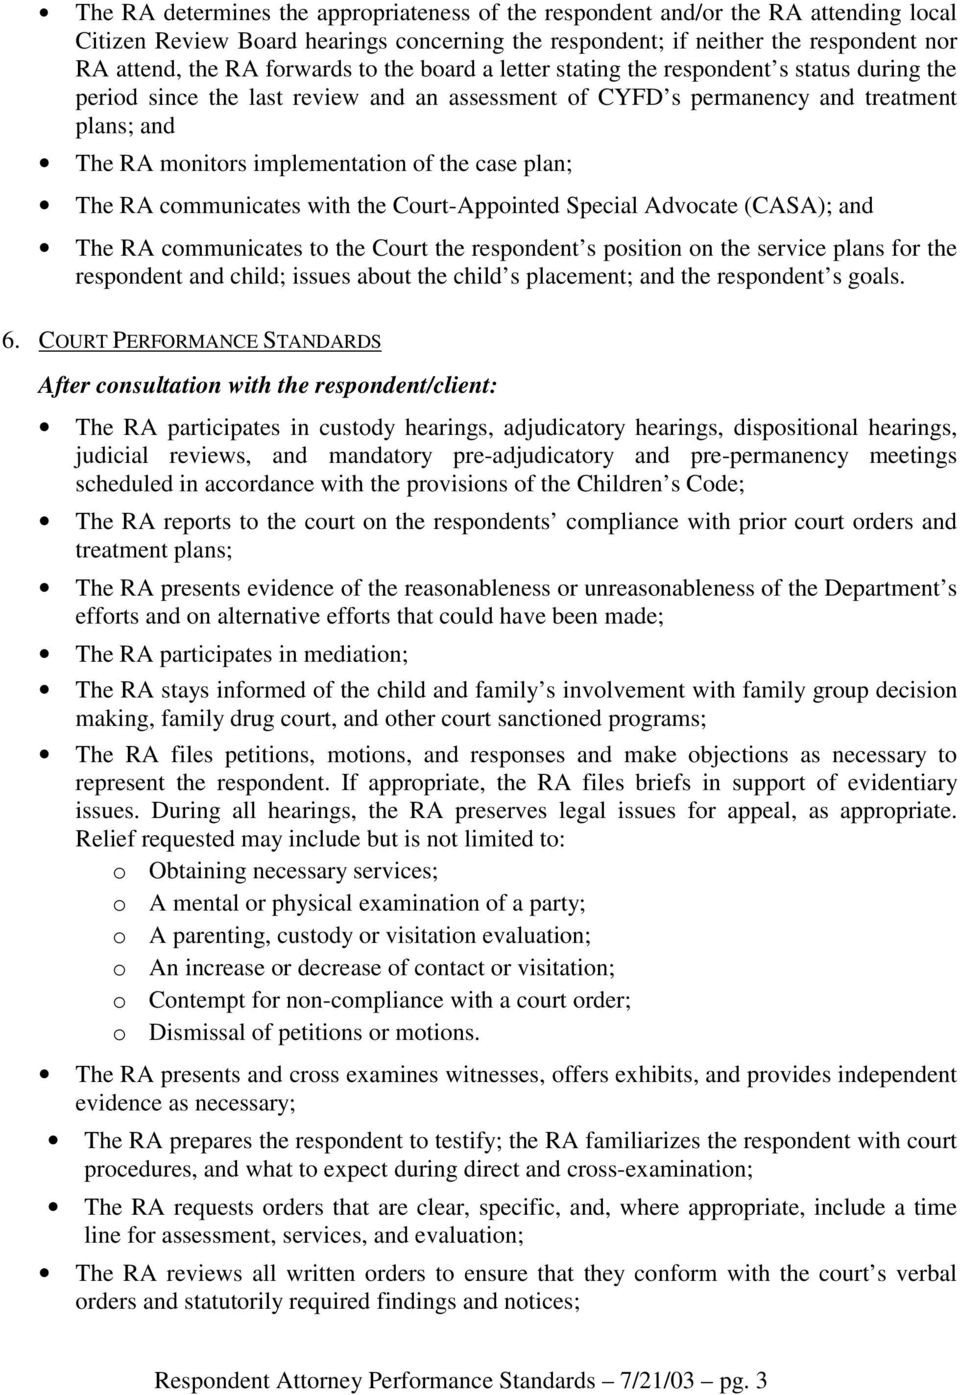 case plan; The RA communicates with the Court-Appointed Special Advocate (CASA); and The RA communicates to the Court the respondent s position on the service plans for the respondent and child;